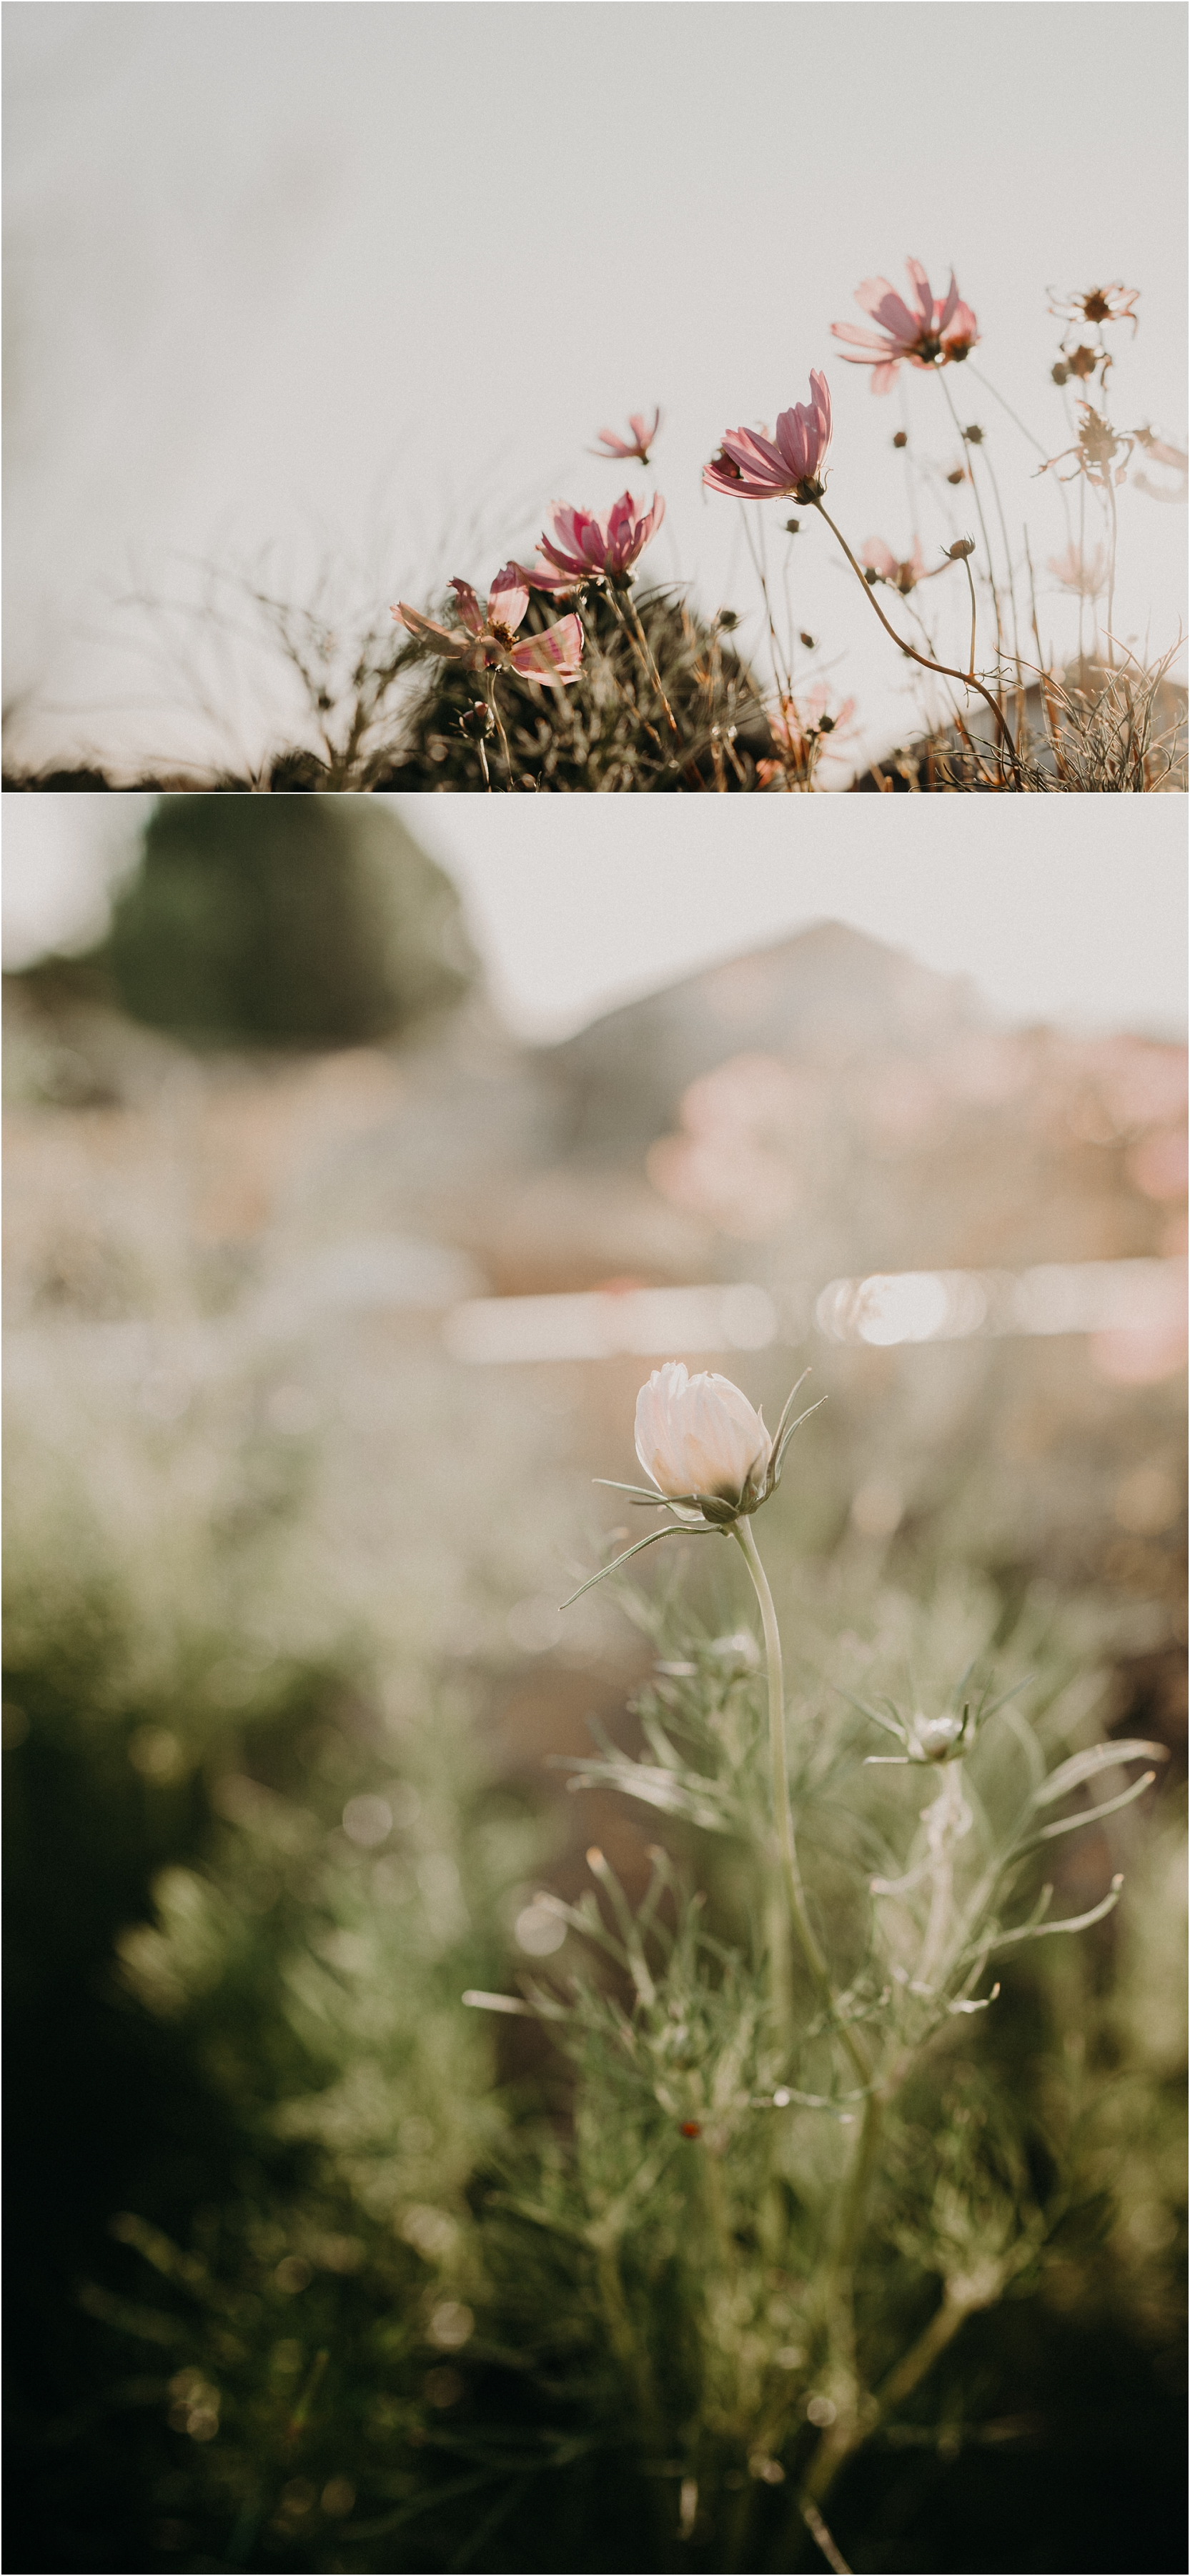 Cosmos blowing in the wind cupcake Cosmos Boise Photographer Makayla Madden Idaho landscaping green thumb gardening 101